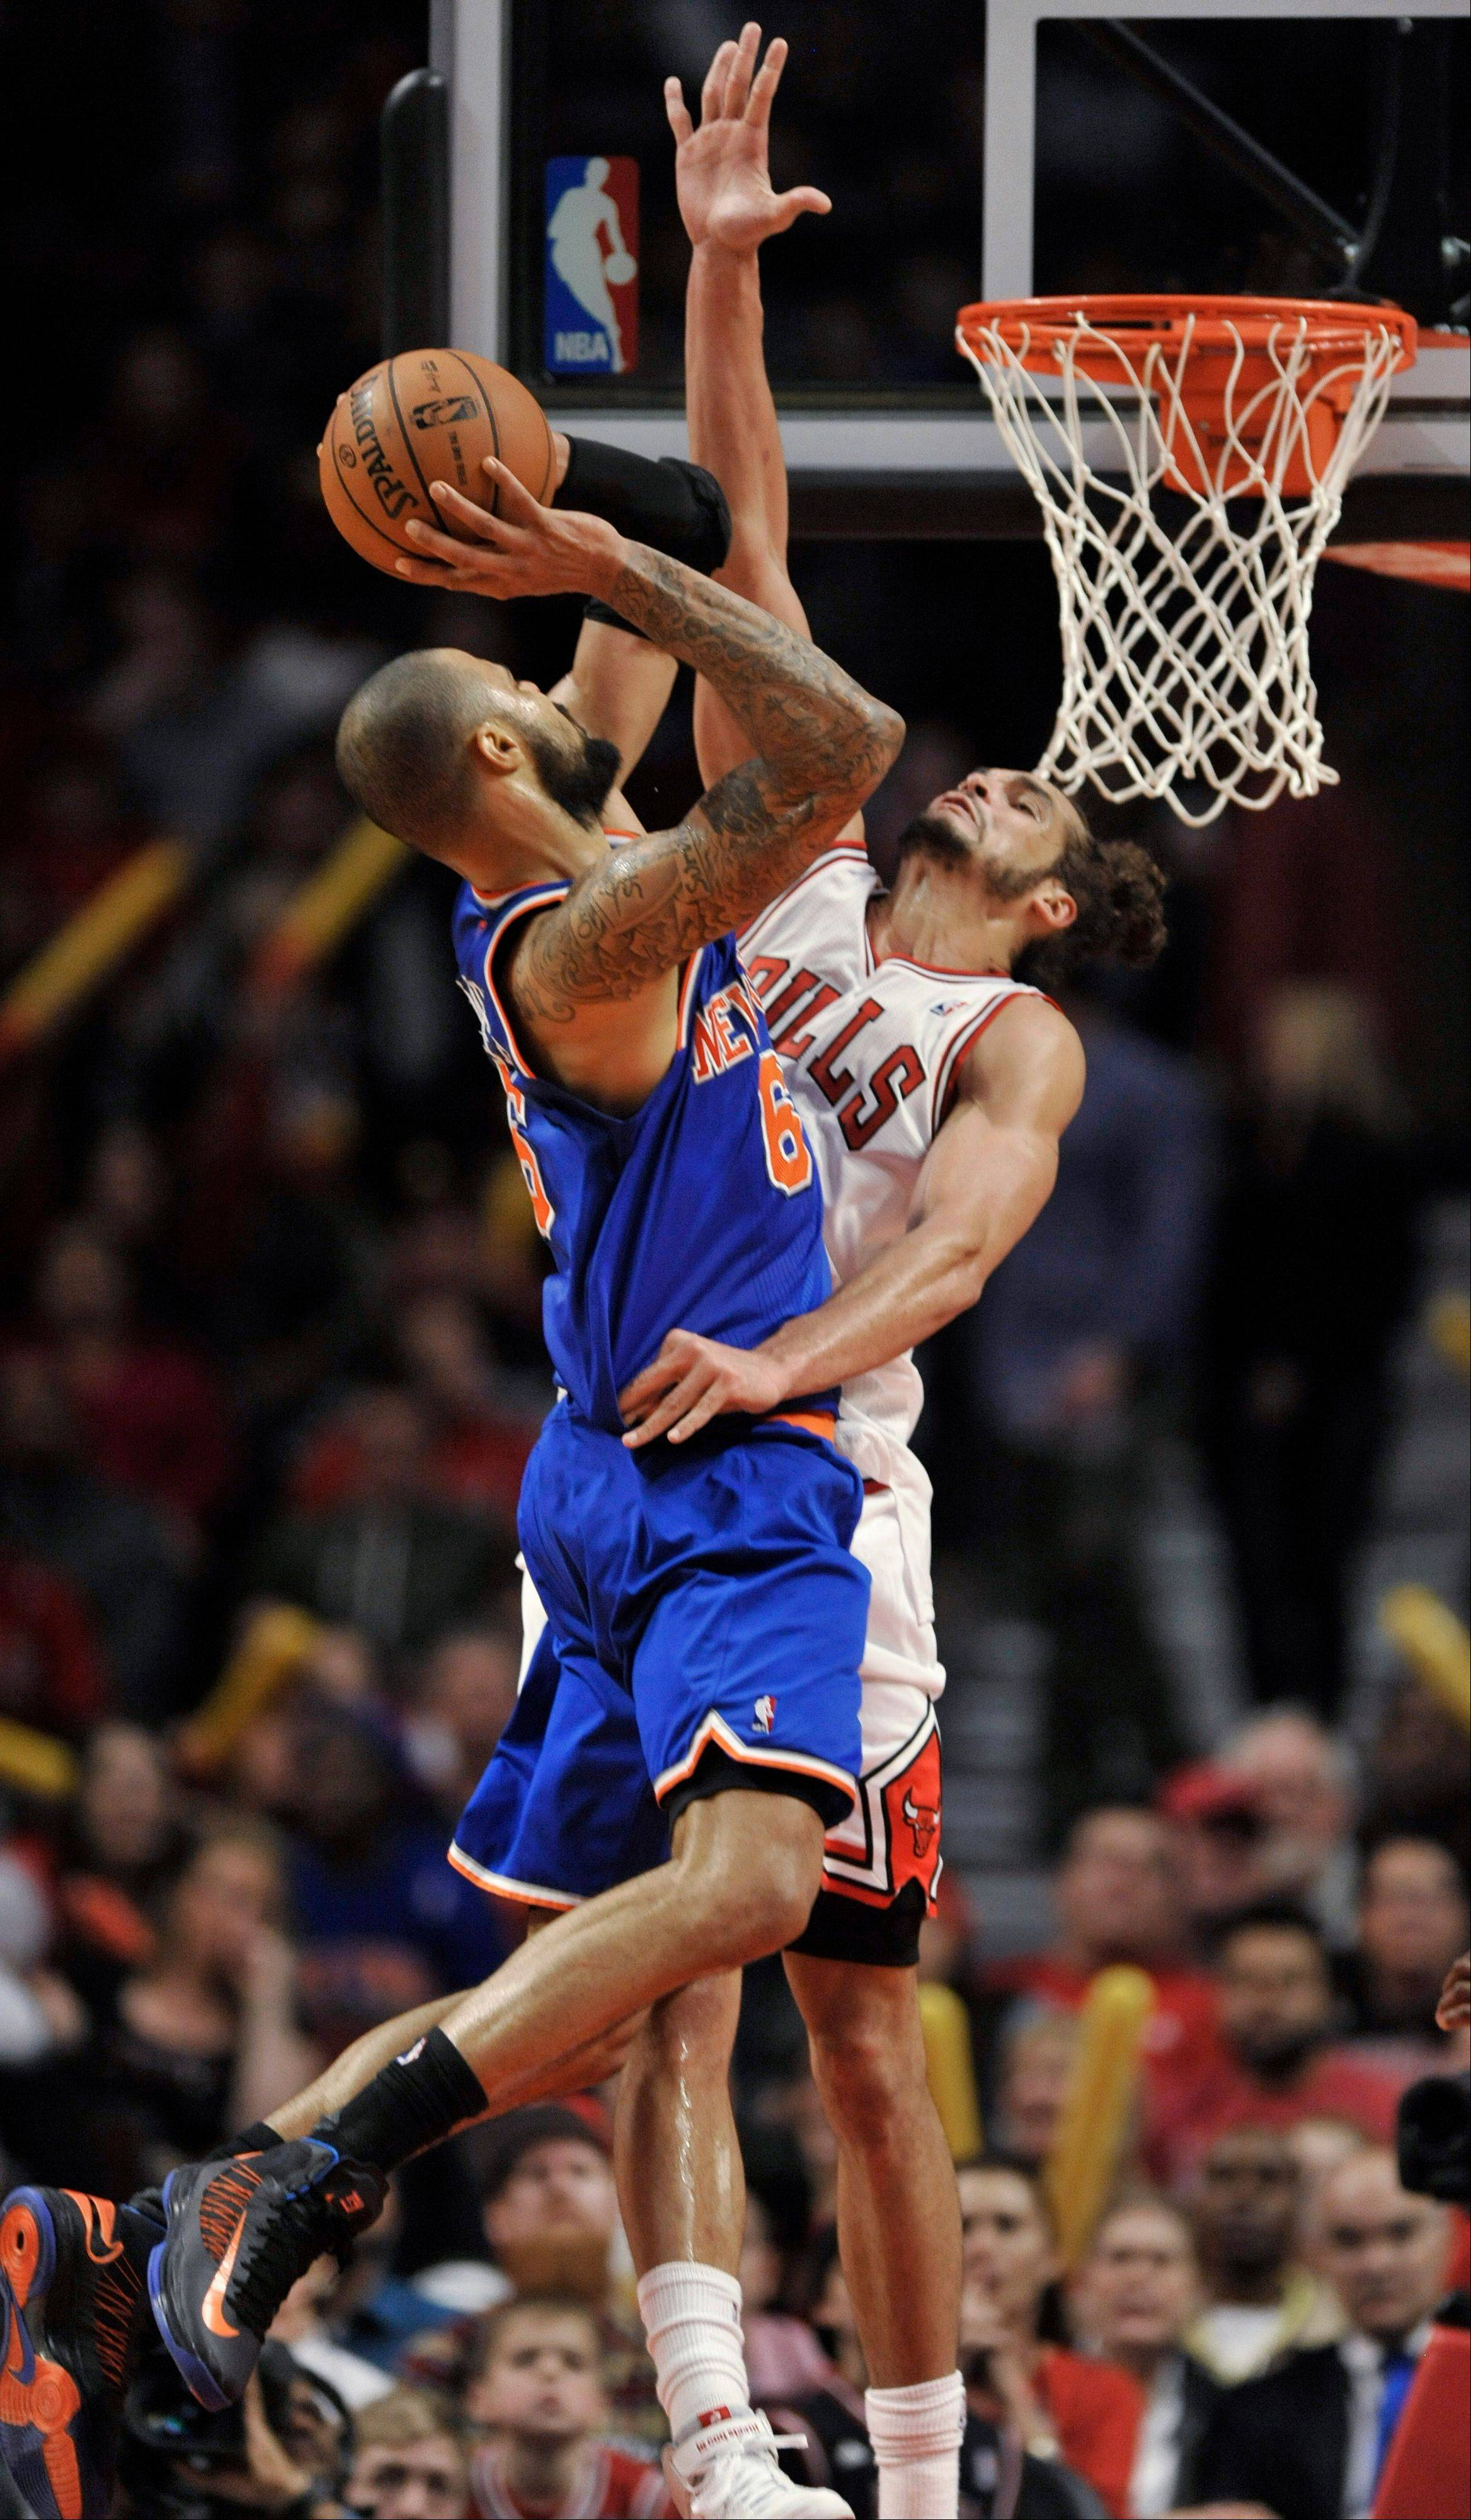 The Bulls� Joakim Noah goes up for the block and fouls the Knicks� Tyson Chandler on Saturday night.